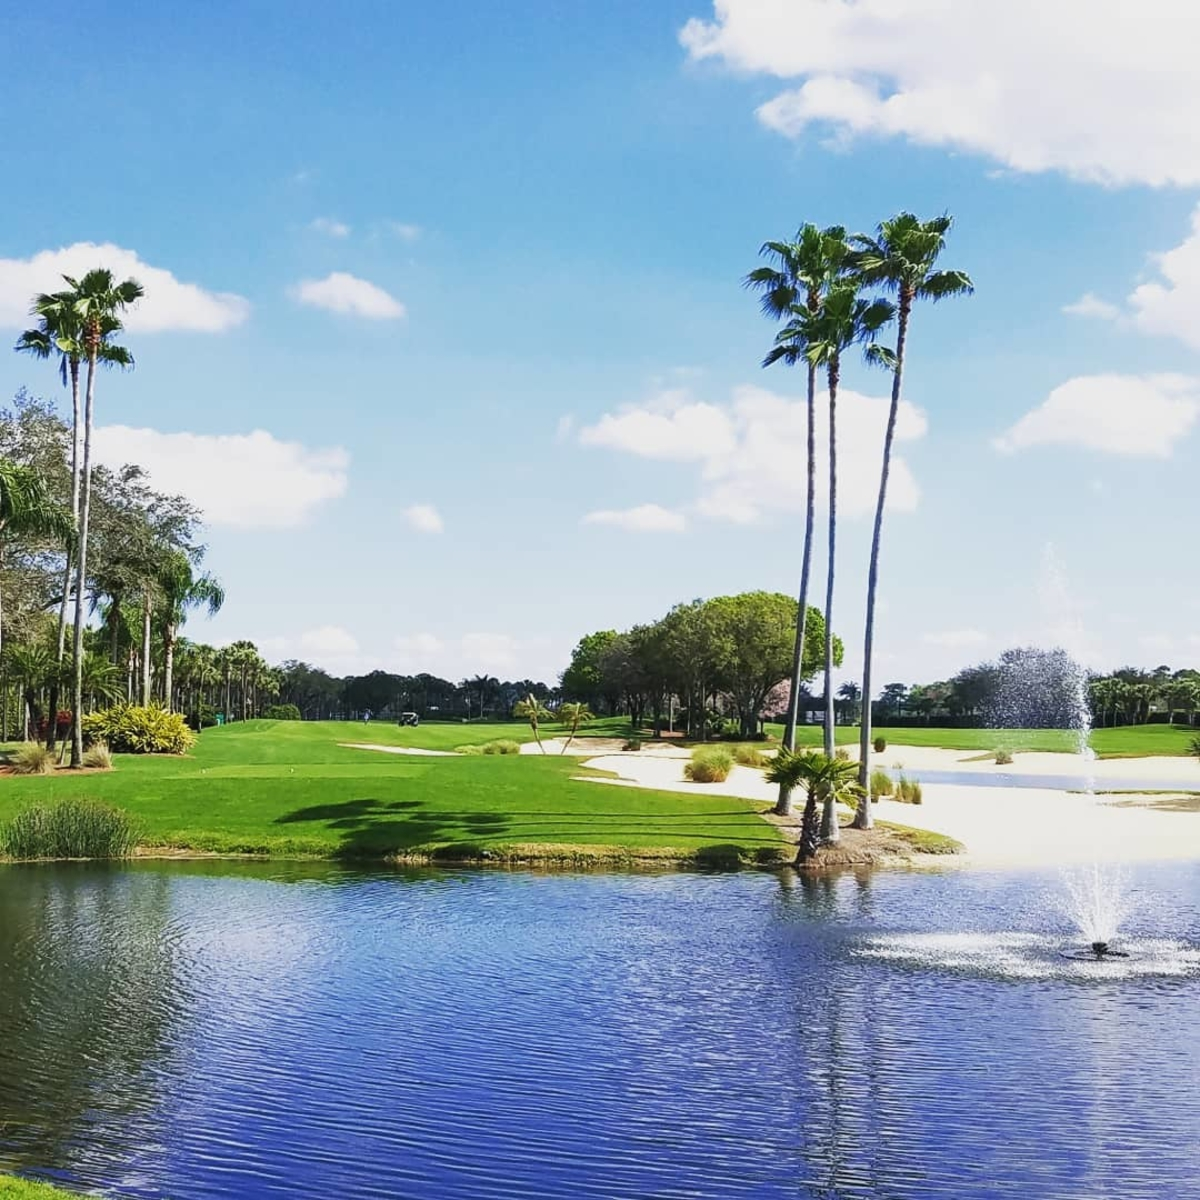 It's hard to focus on your swing when the view looks like this.  (Photo Credit: @jgorms41) https://t.co/Geeb96SDJX